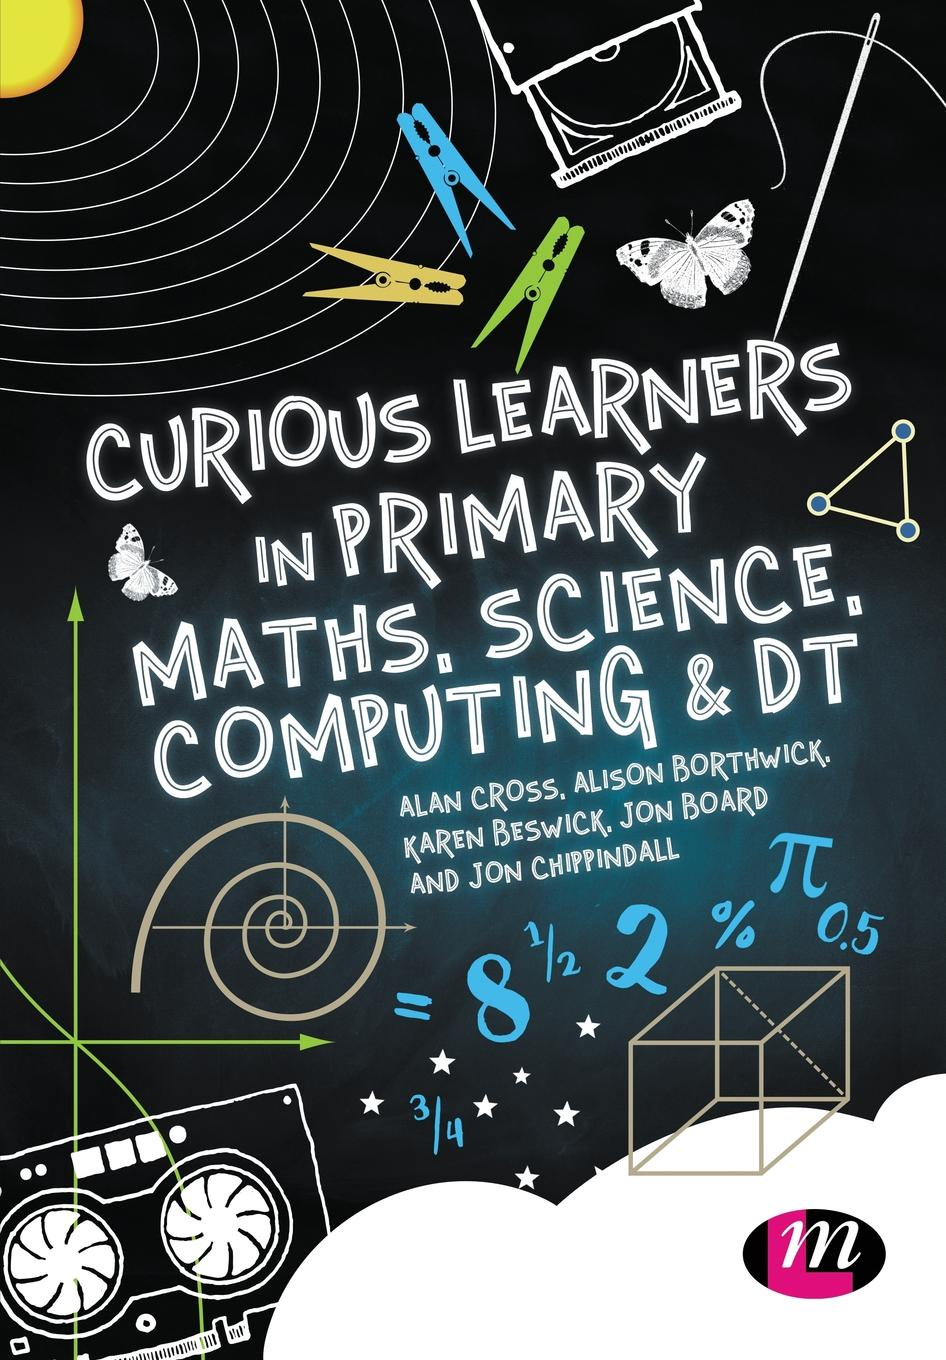 Alan Cross Alison Borthwick Karen Beswick Curious Learners in Primary Maths Science Computing and DT